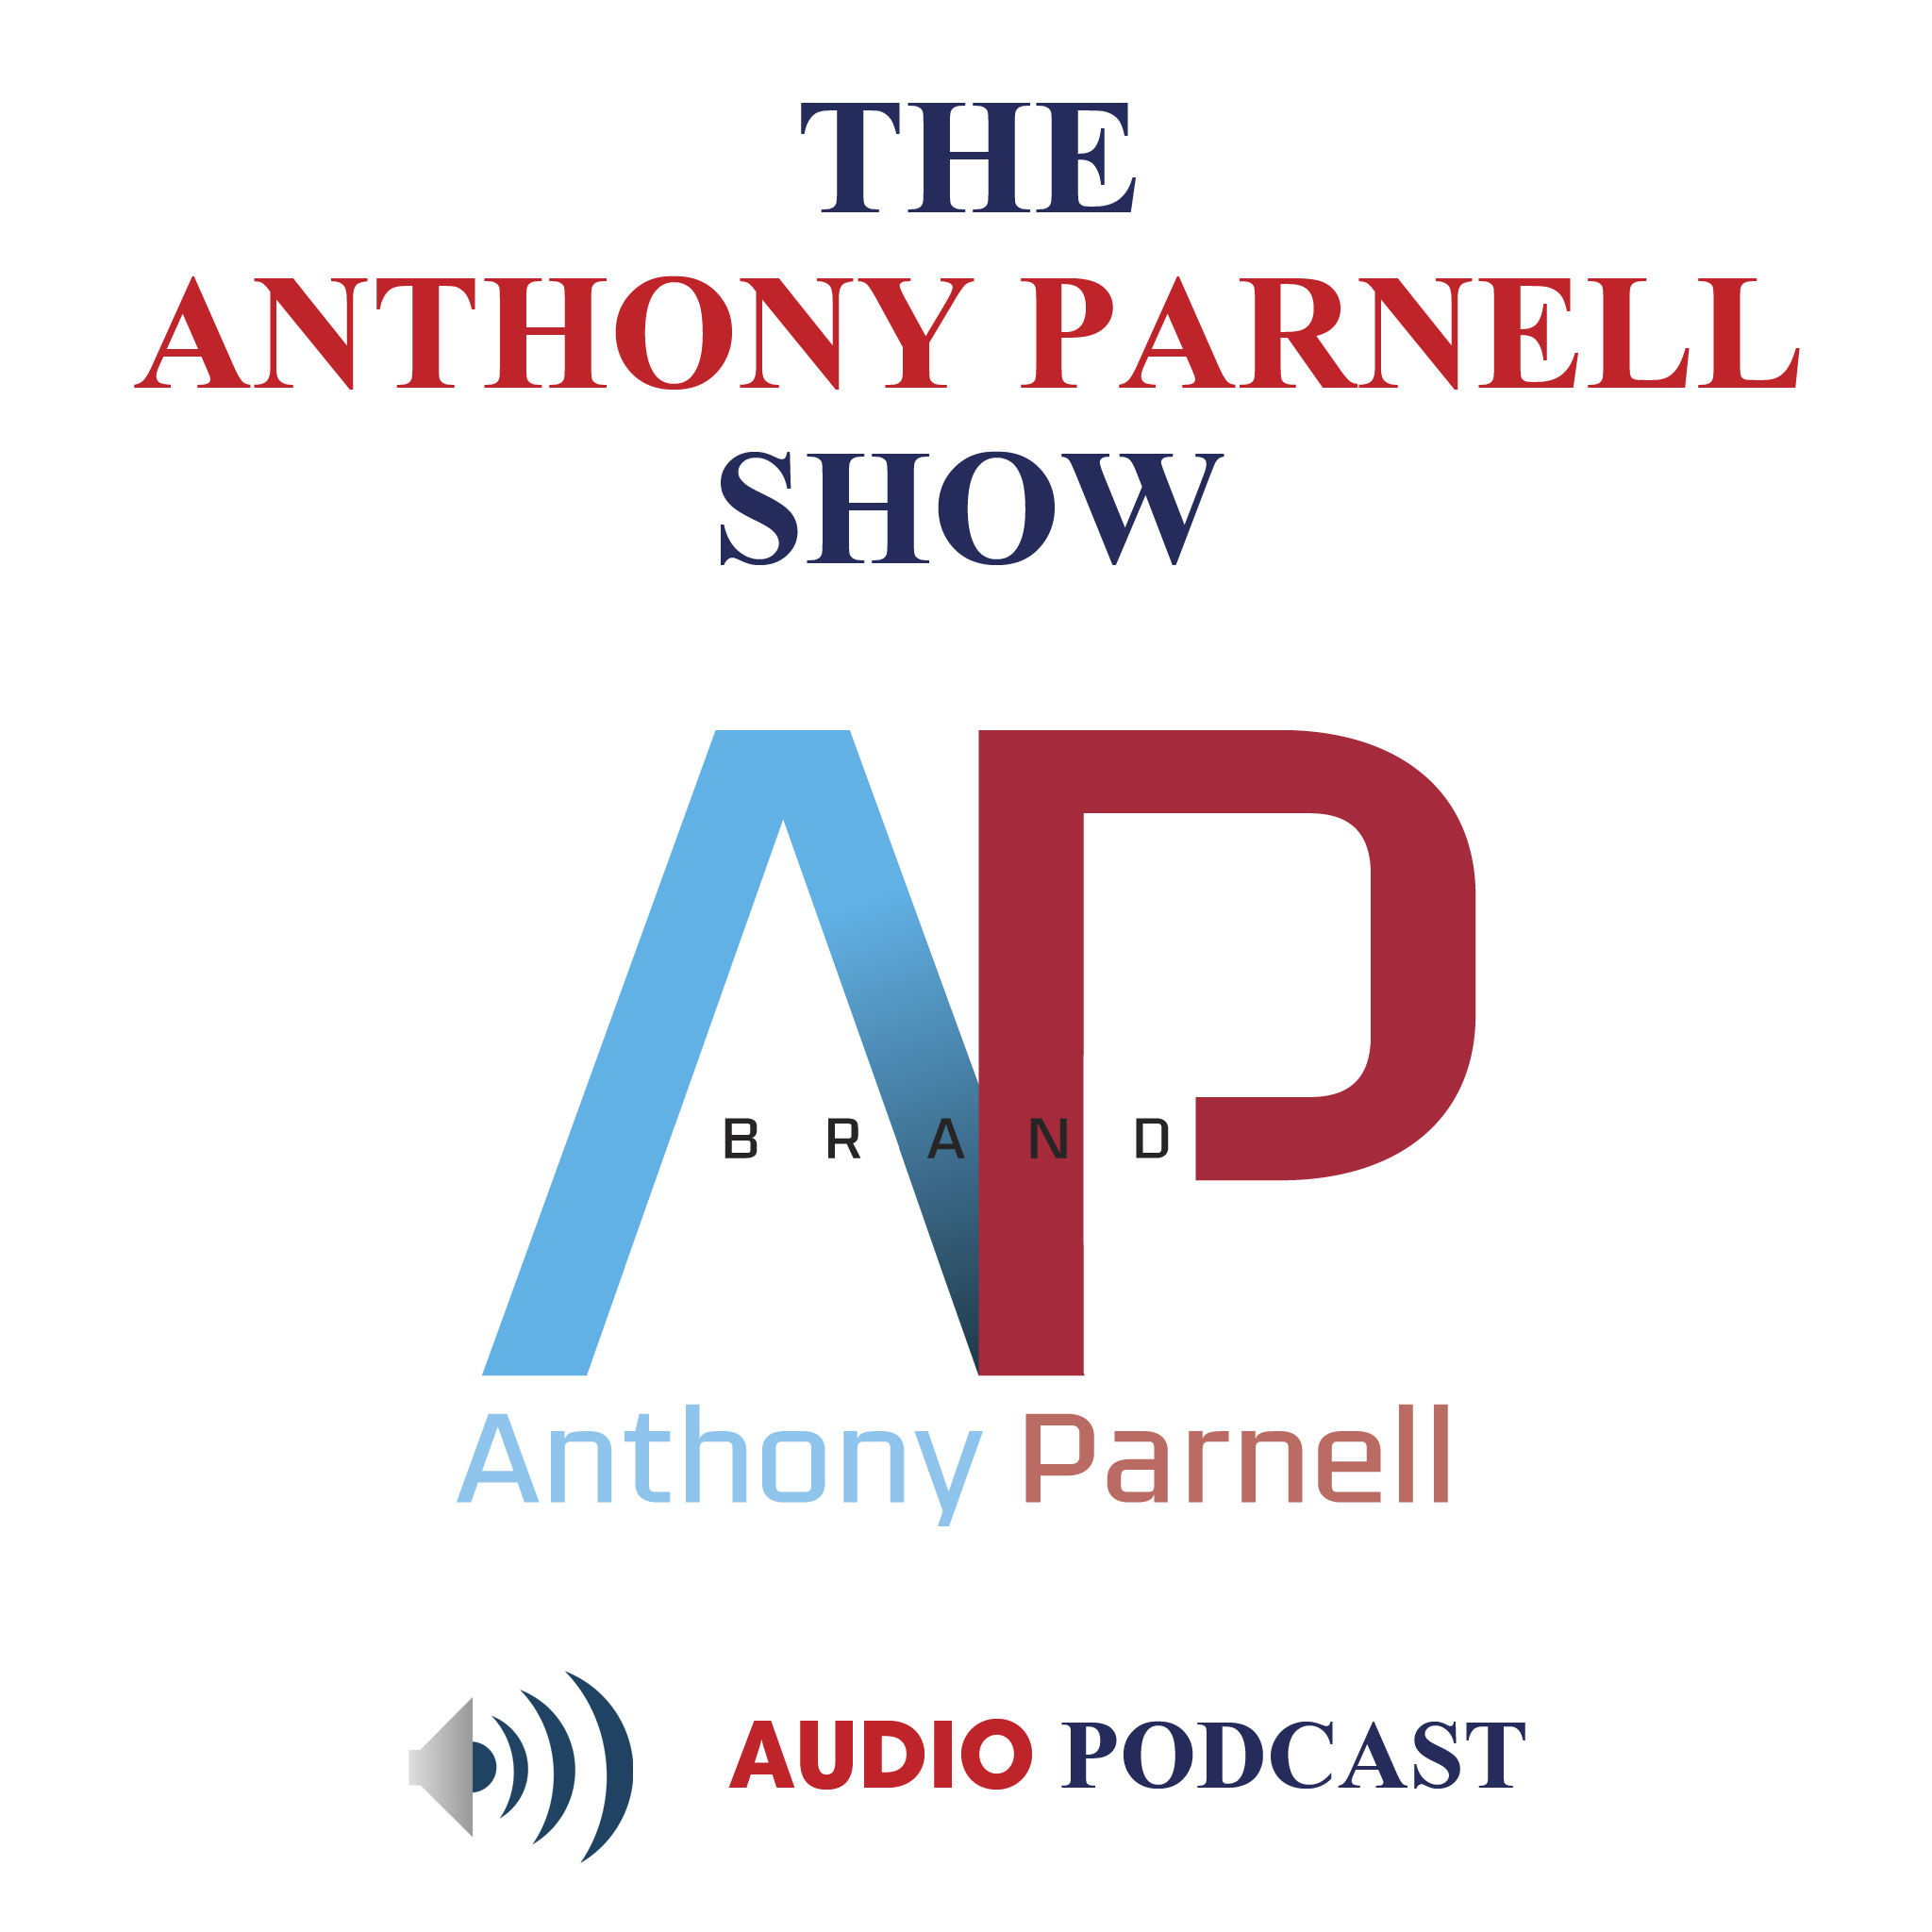 The Anthony Parnell Show Podcast